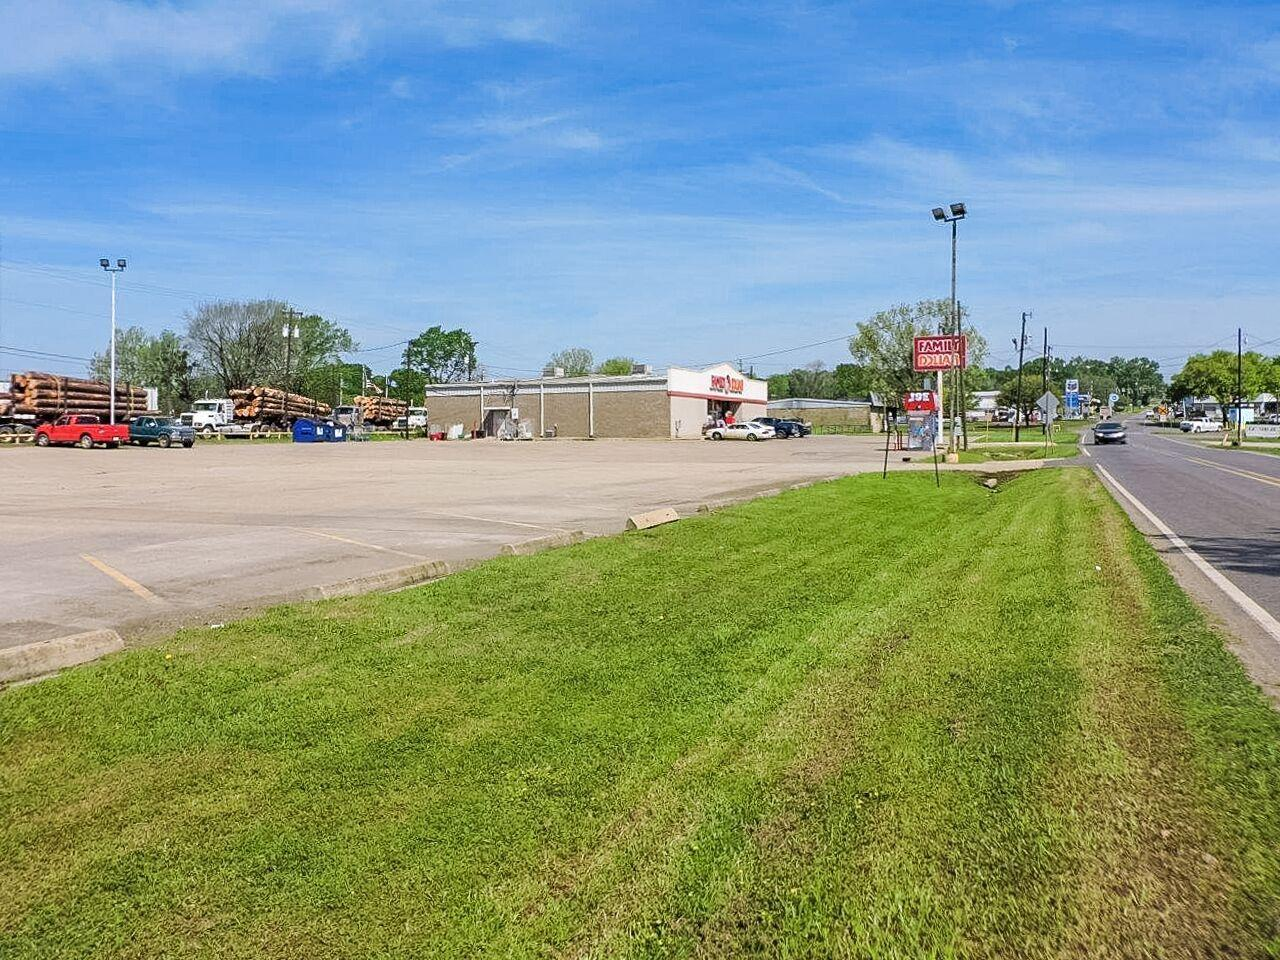 Zwolle commercial property for sale, 2550 Obrie St, Zwolle LA - $500,000